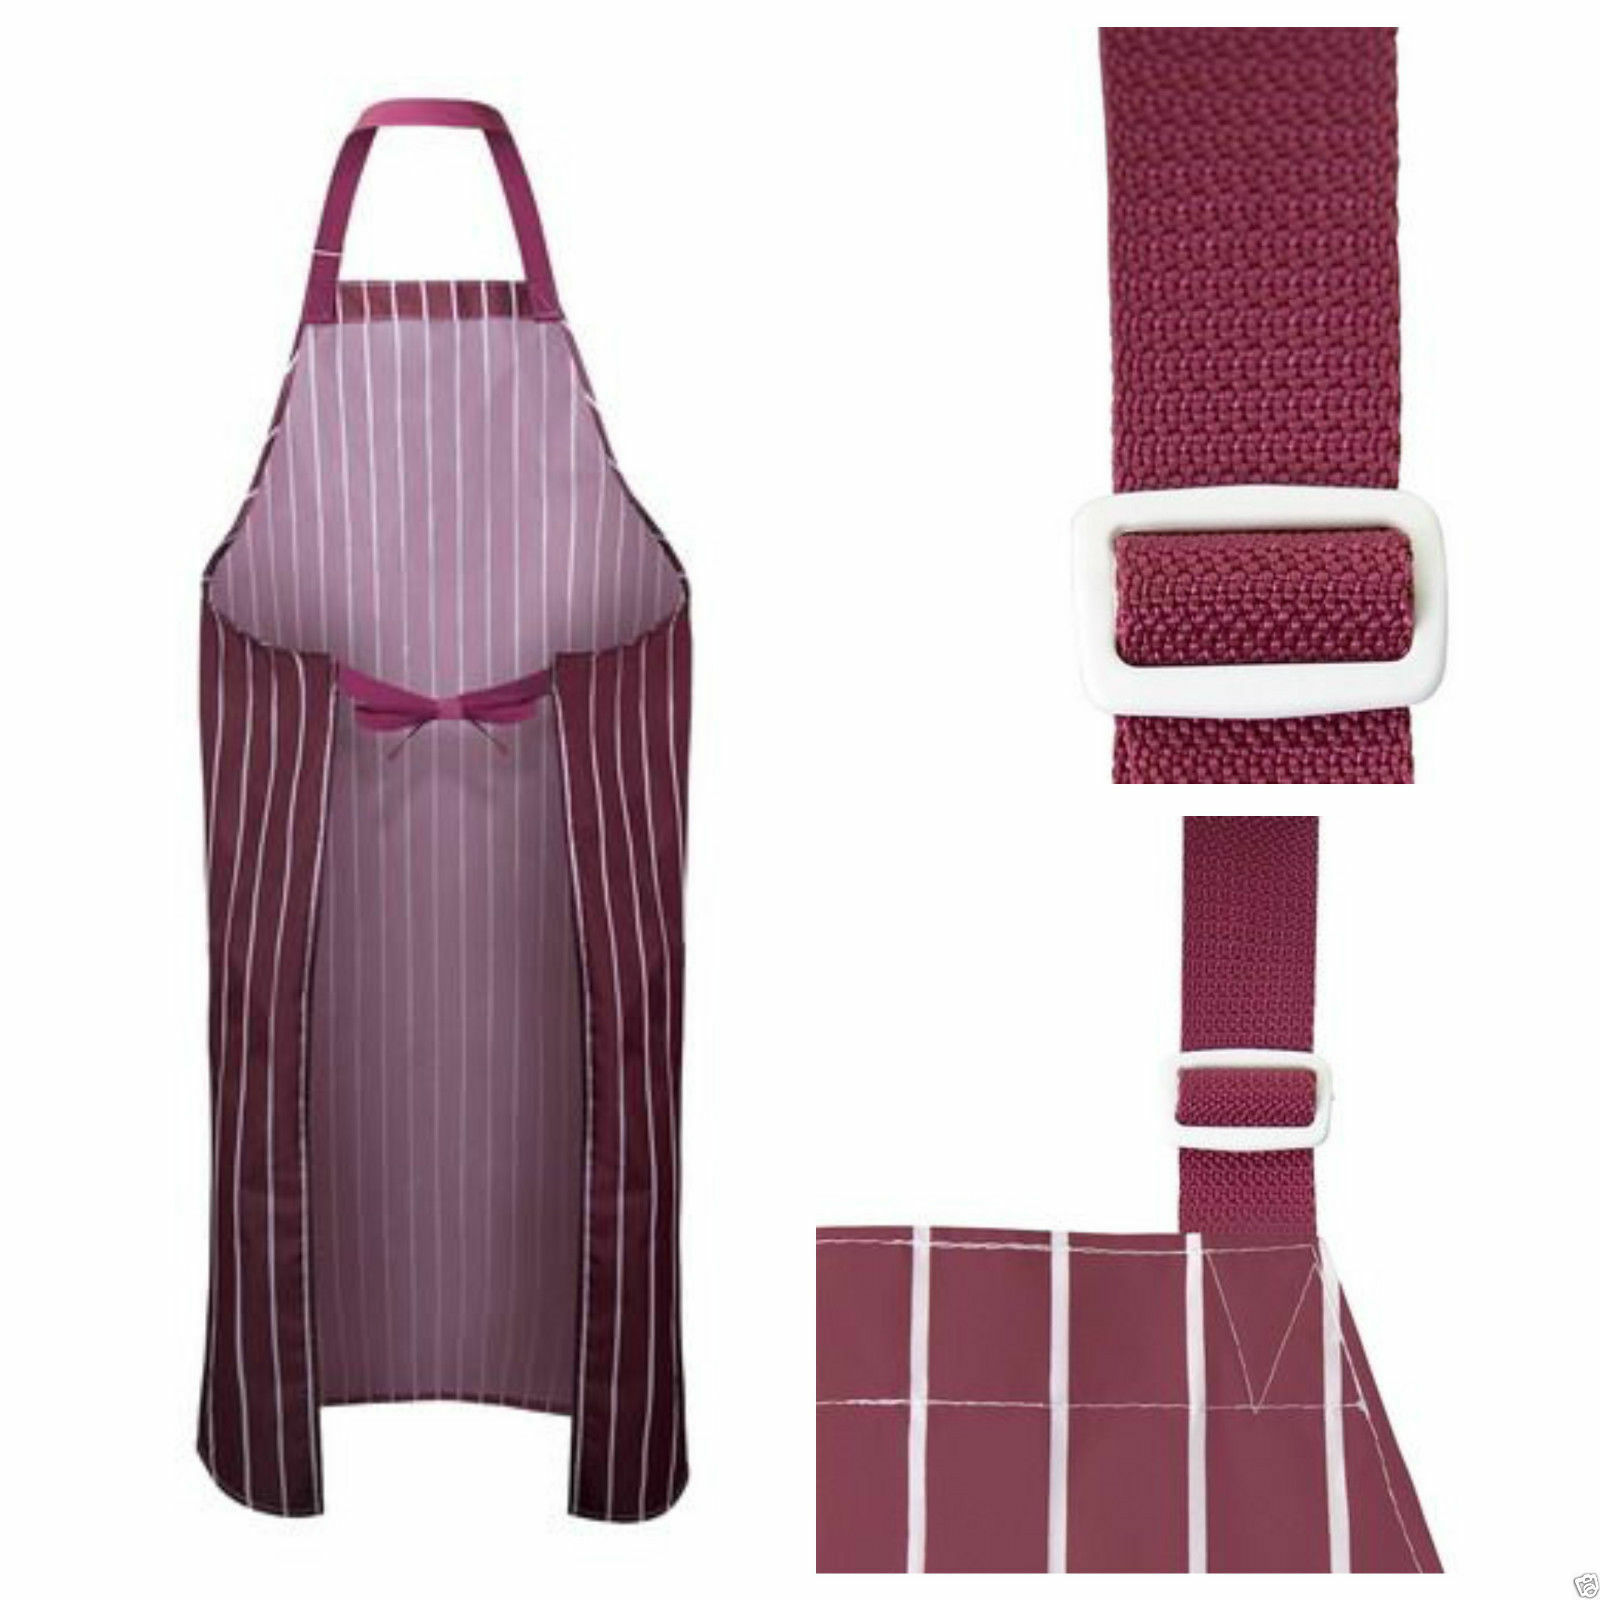 Heavy Duty Aprons : Heavy duty waterproof chef apron kitchen butcher cooking